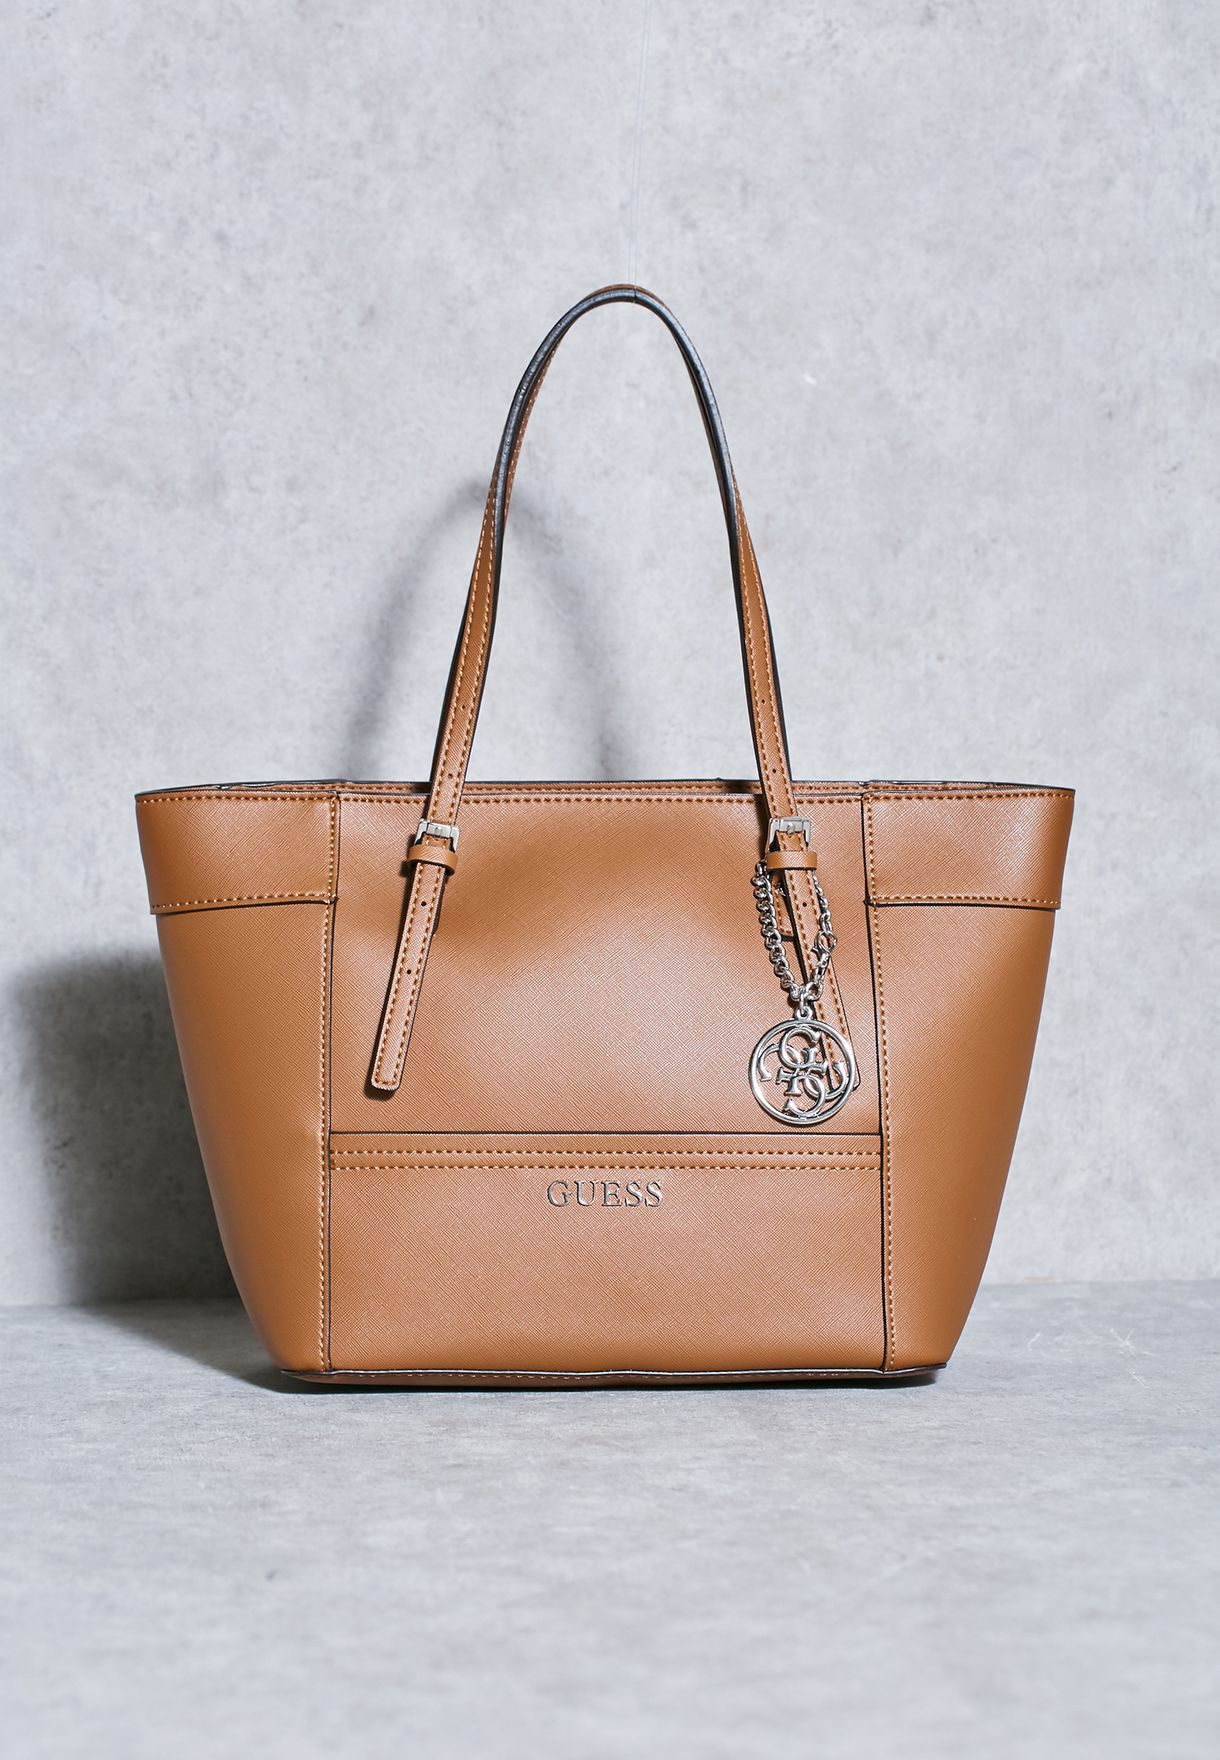 6eebf7d7ccec Shop Guess browns Small Delaney Classic Tote for Women in Bahrain -  GU094AC60UWL